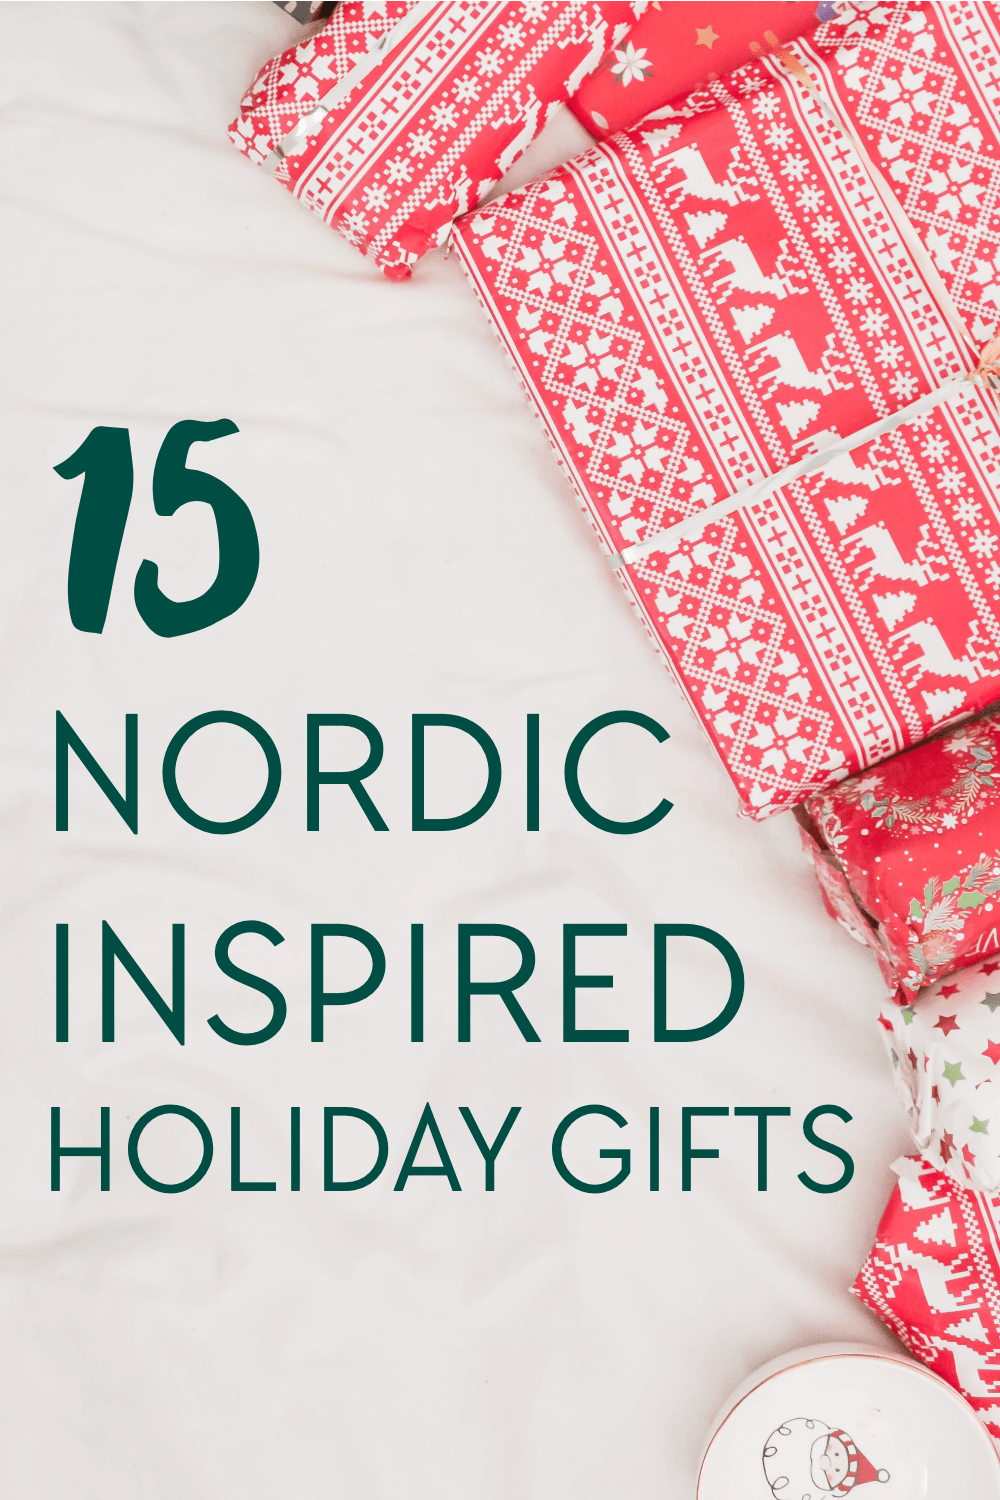 15 Nordic inspired gifts from Scandinavia and the Nordics